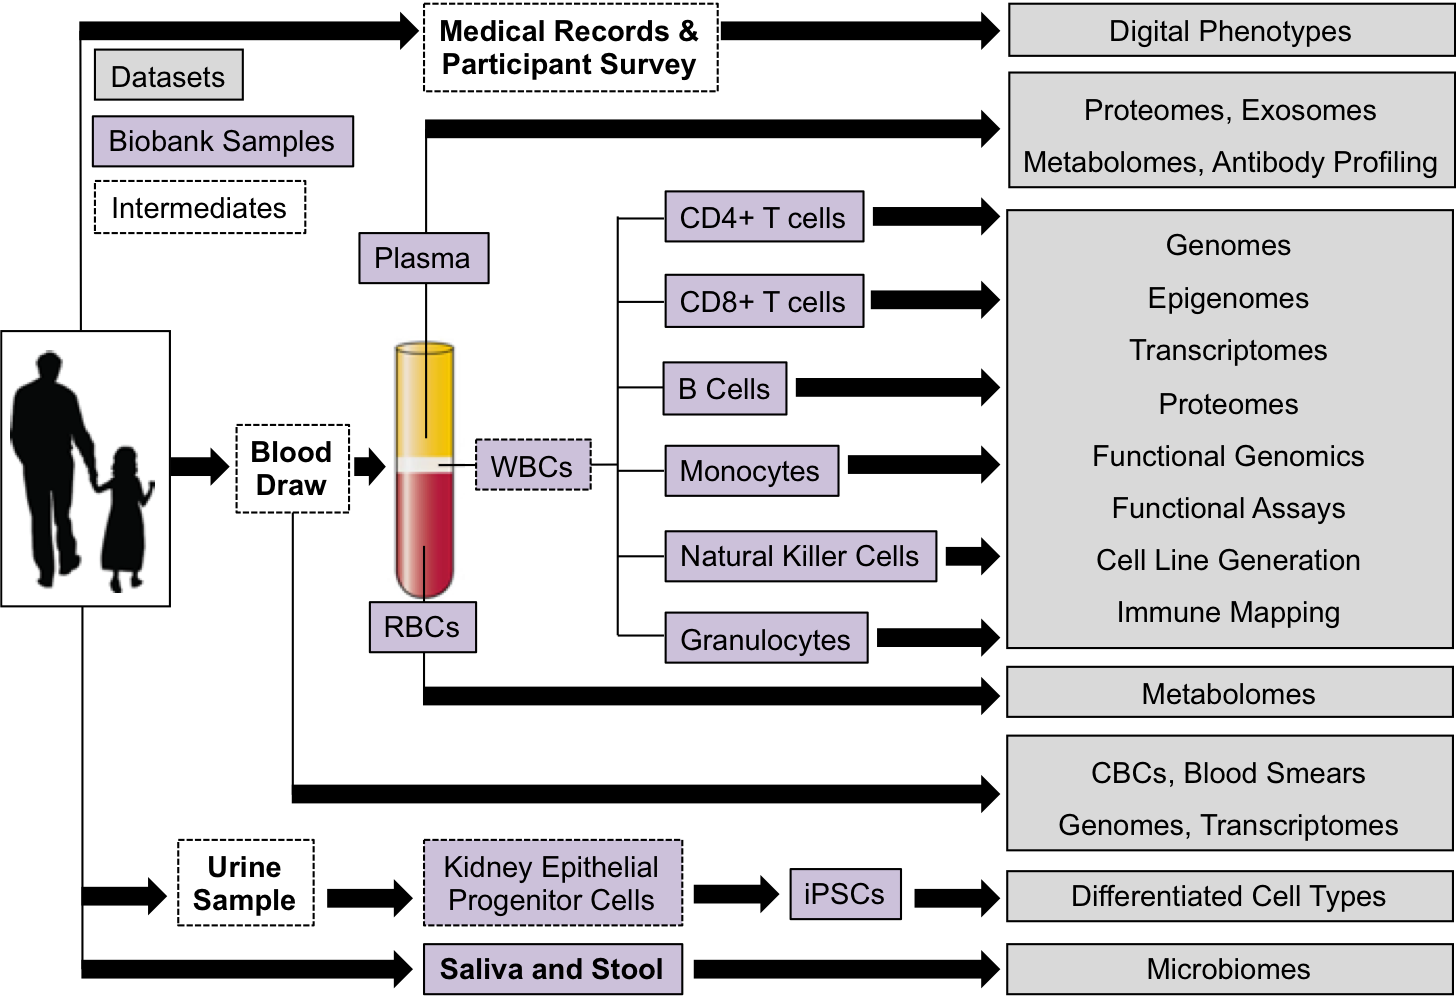 An overview of all the biobank samples to be collected and datasets to be generated by the Human Trisome project.  (WBC - white blood cell. RBC - red blood cell. CBC - complete blood count. iPSC - induced pluripotent stem cell.)